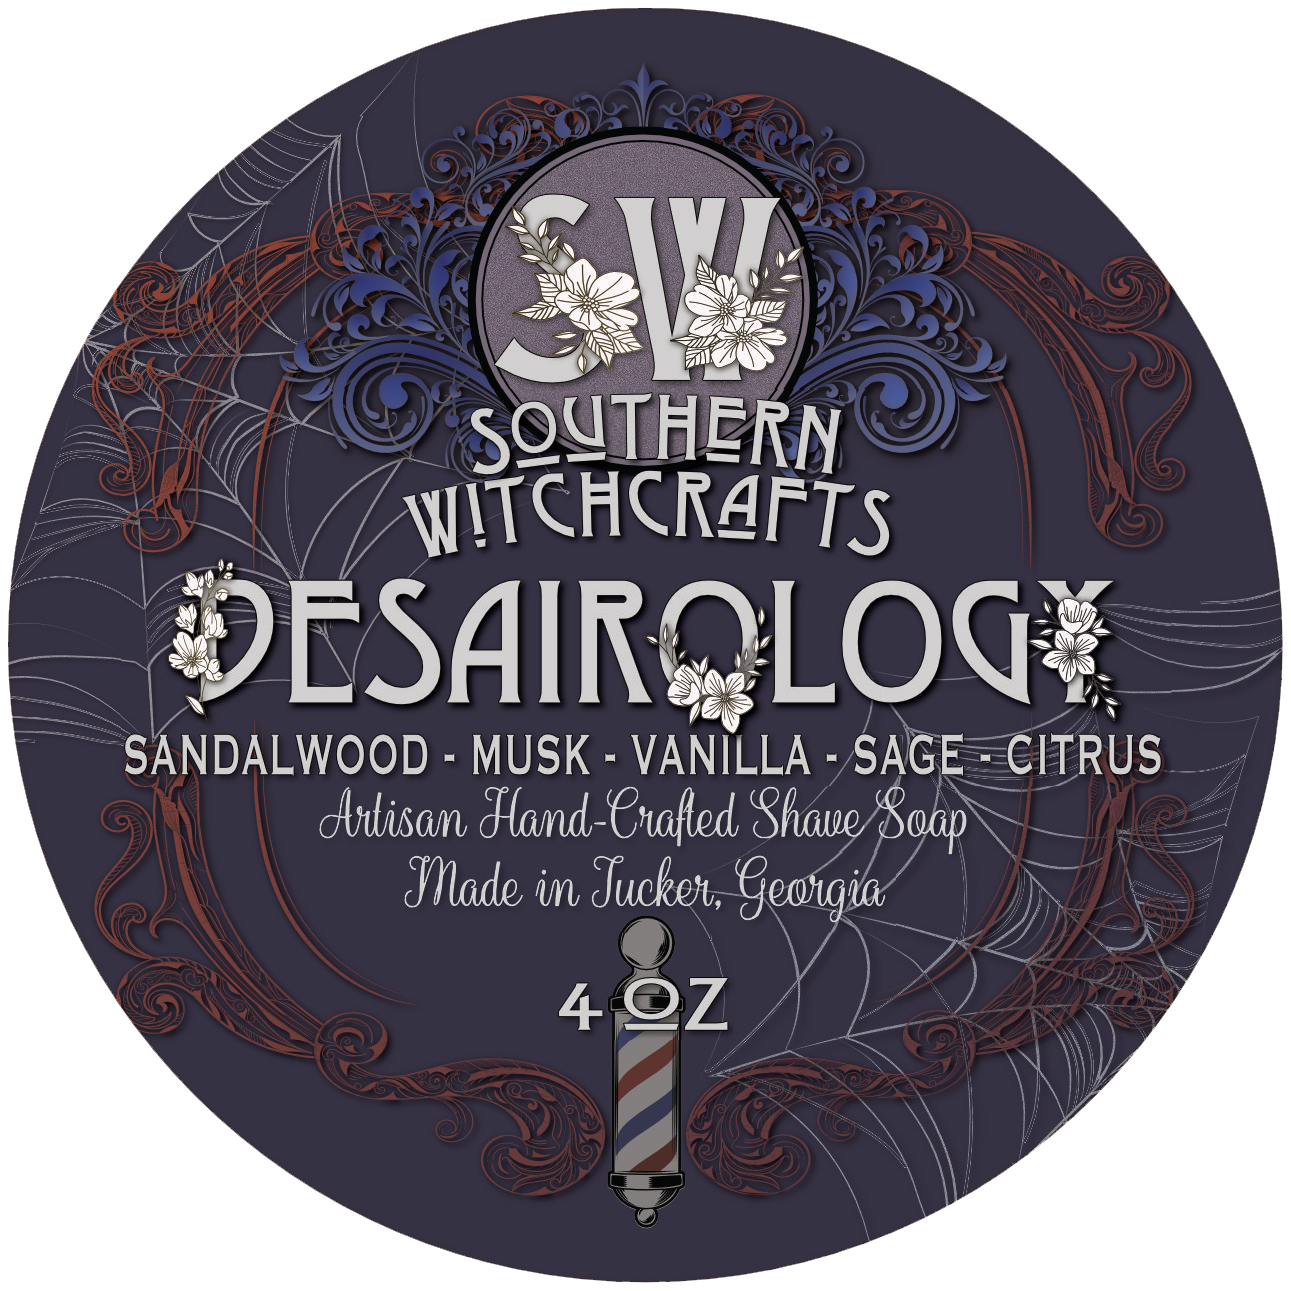 Southern Witchcrafts - Desairology - Soap (Vegan) image